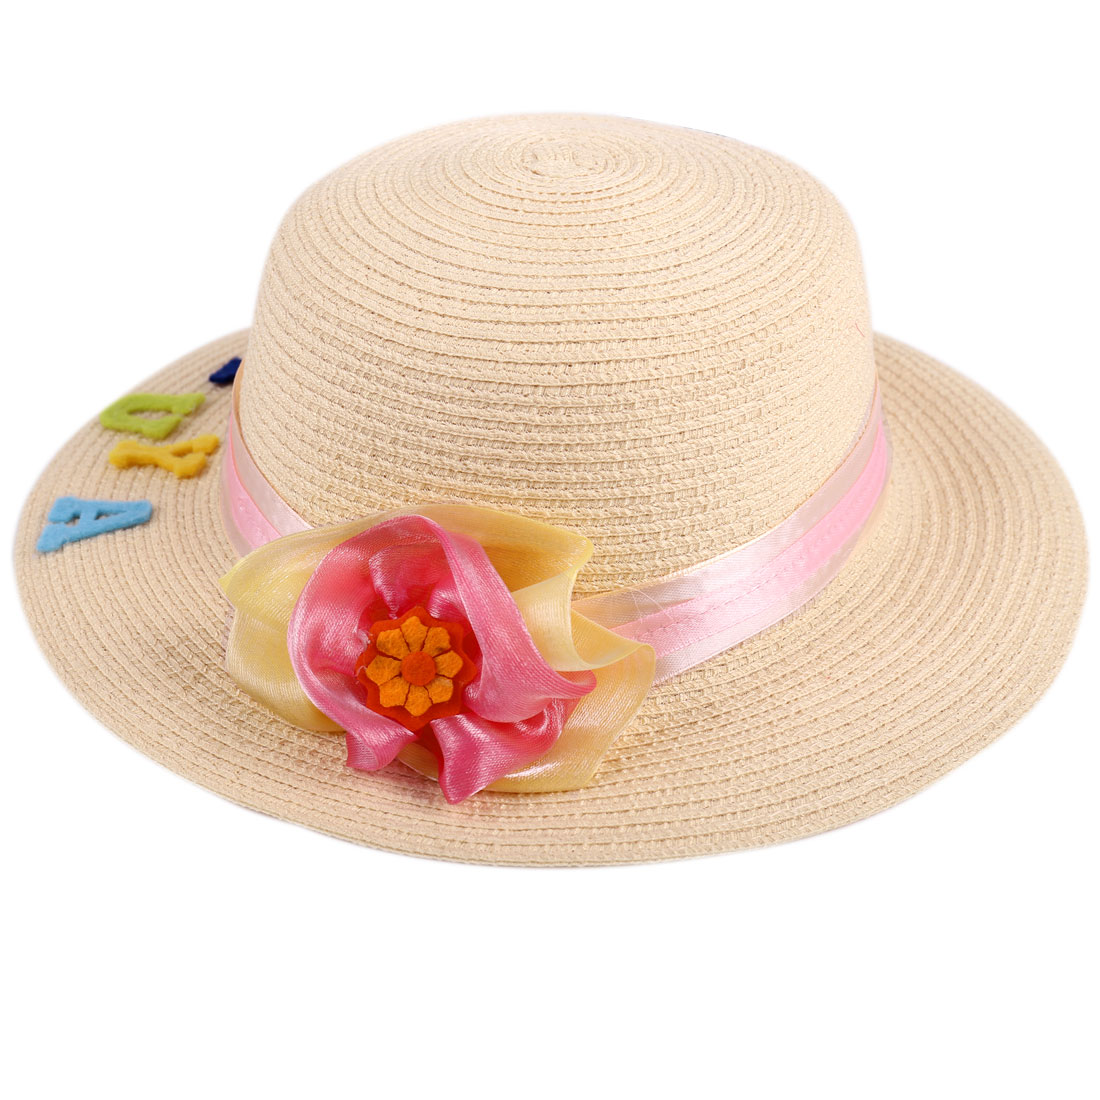 Girls Beautiful Handmade Flower Decor Beige Textured Woven Straw Hat